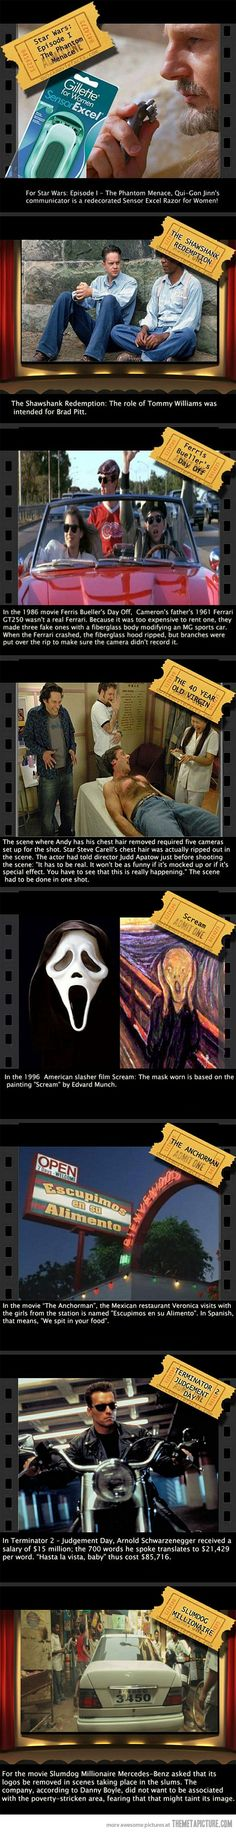 Fun Movie Facts